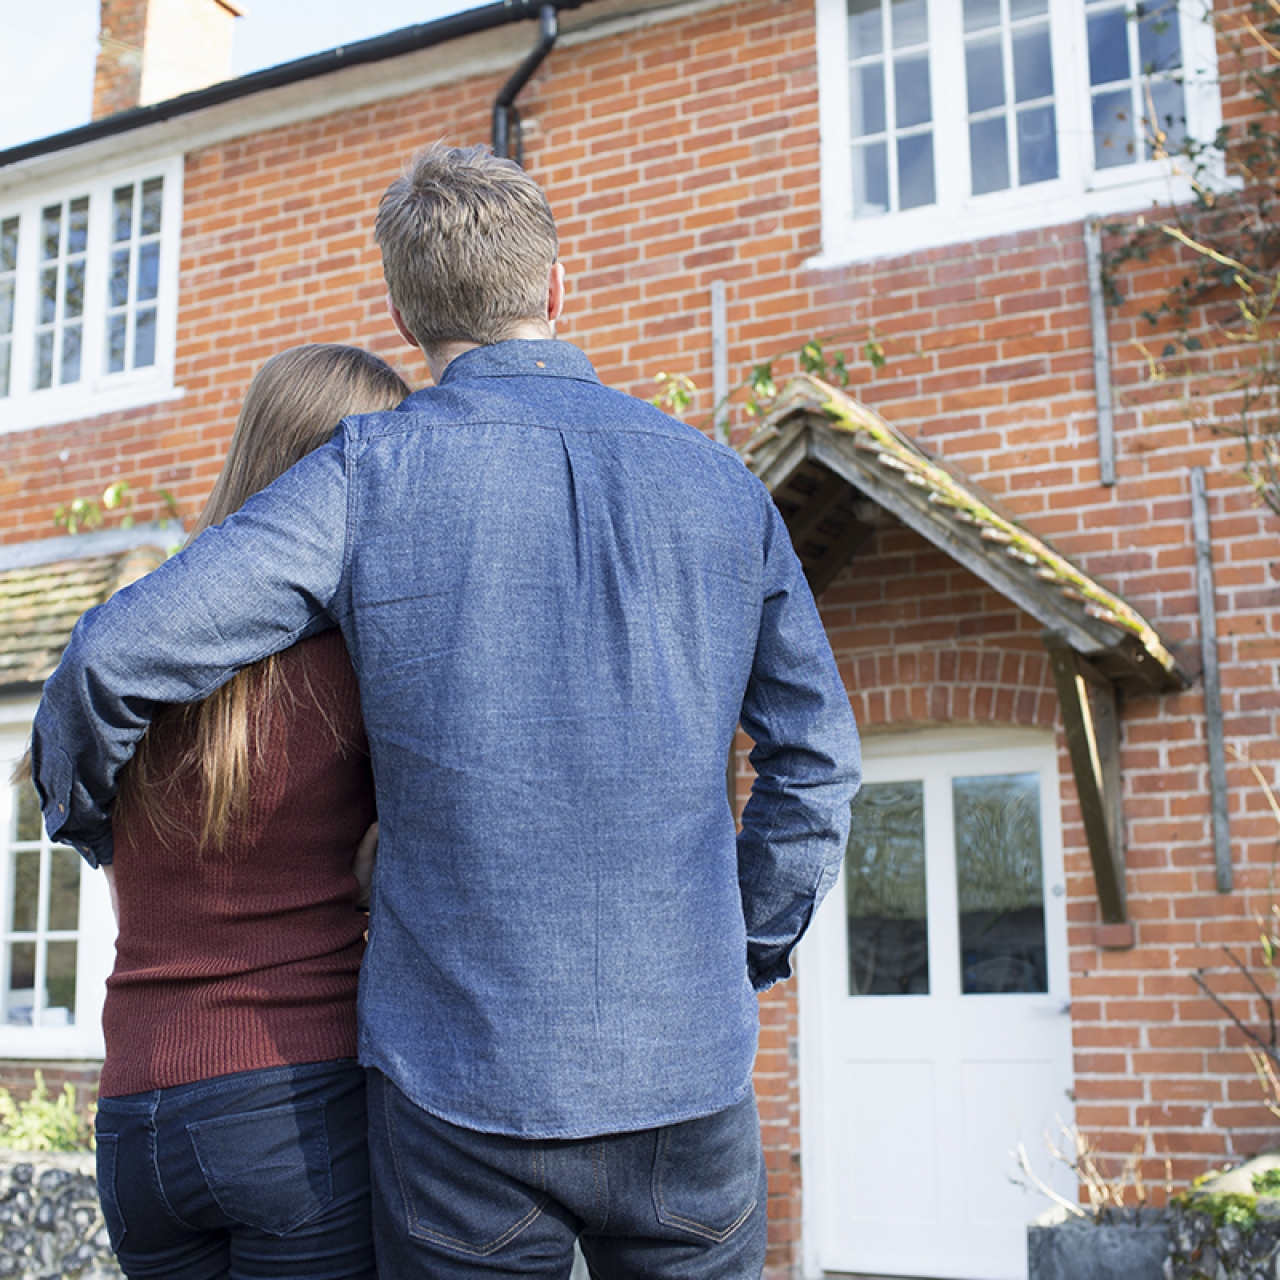 >Half of Maidstone Homeowners Move Again Within 5 Y